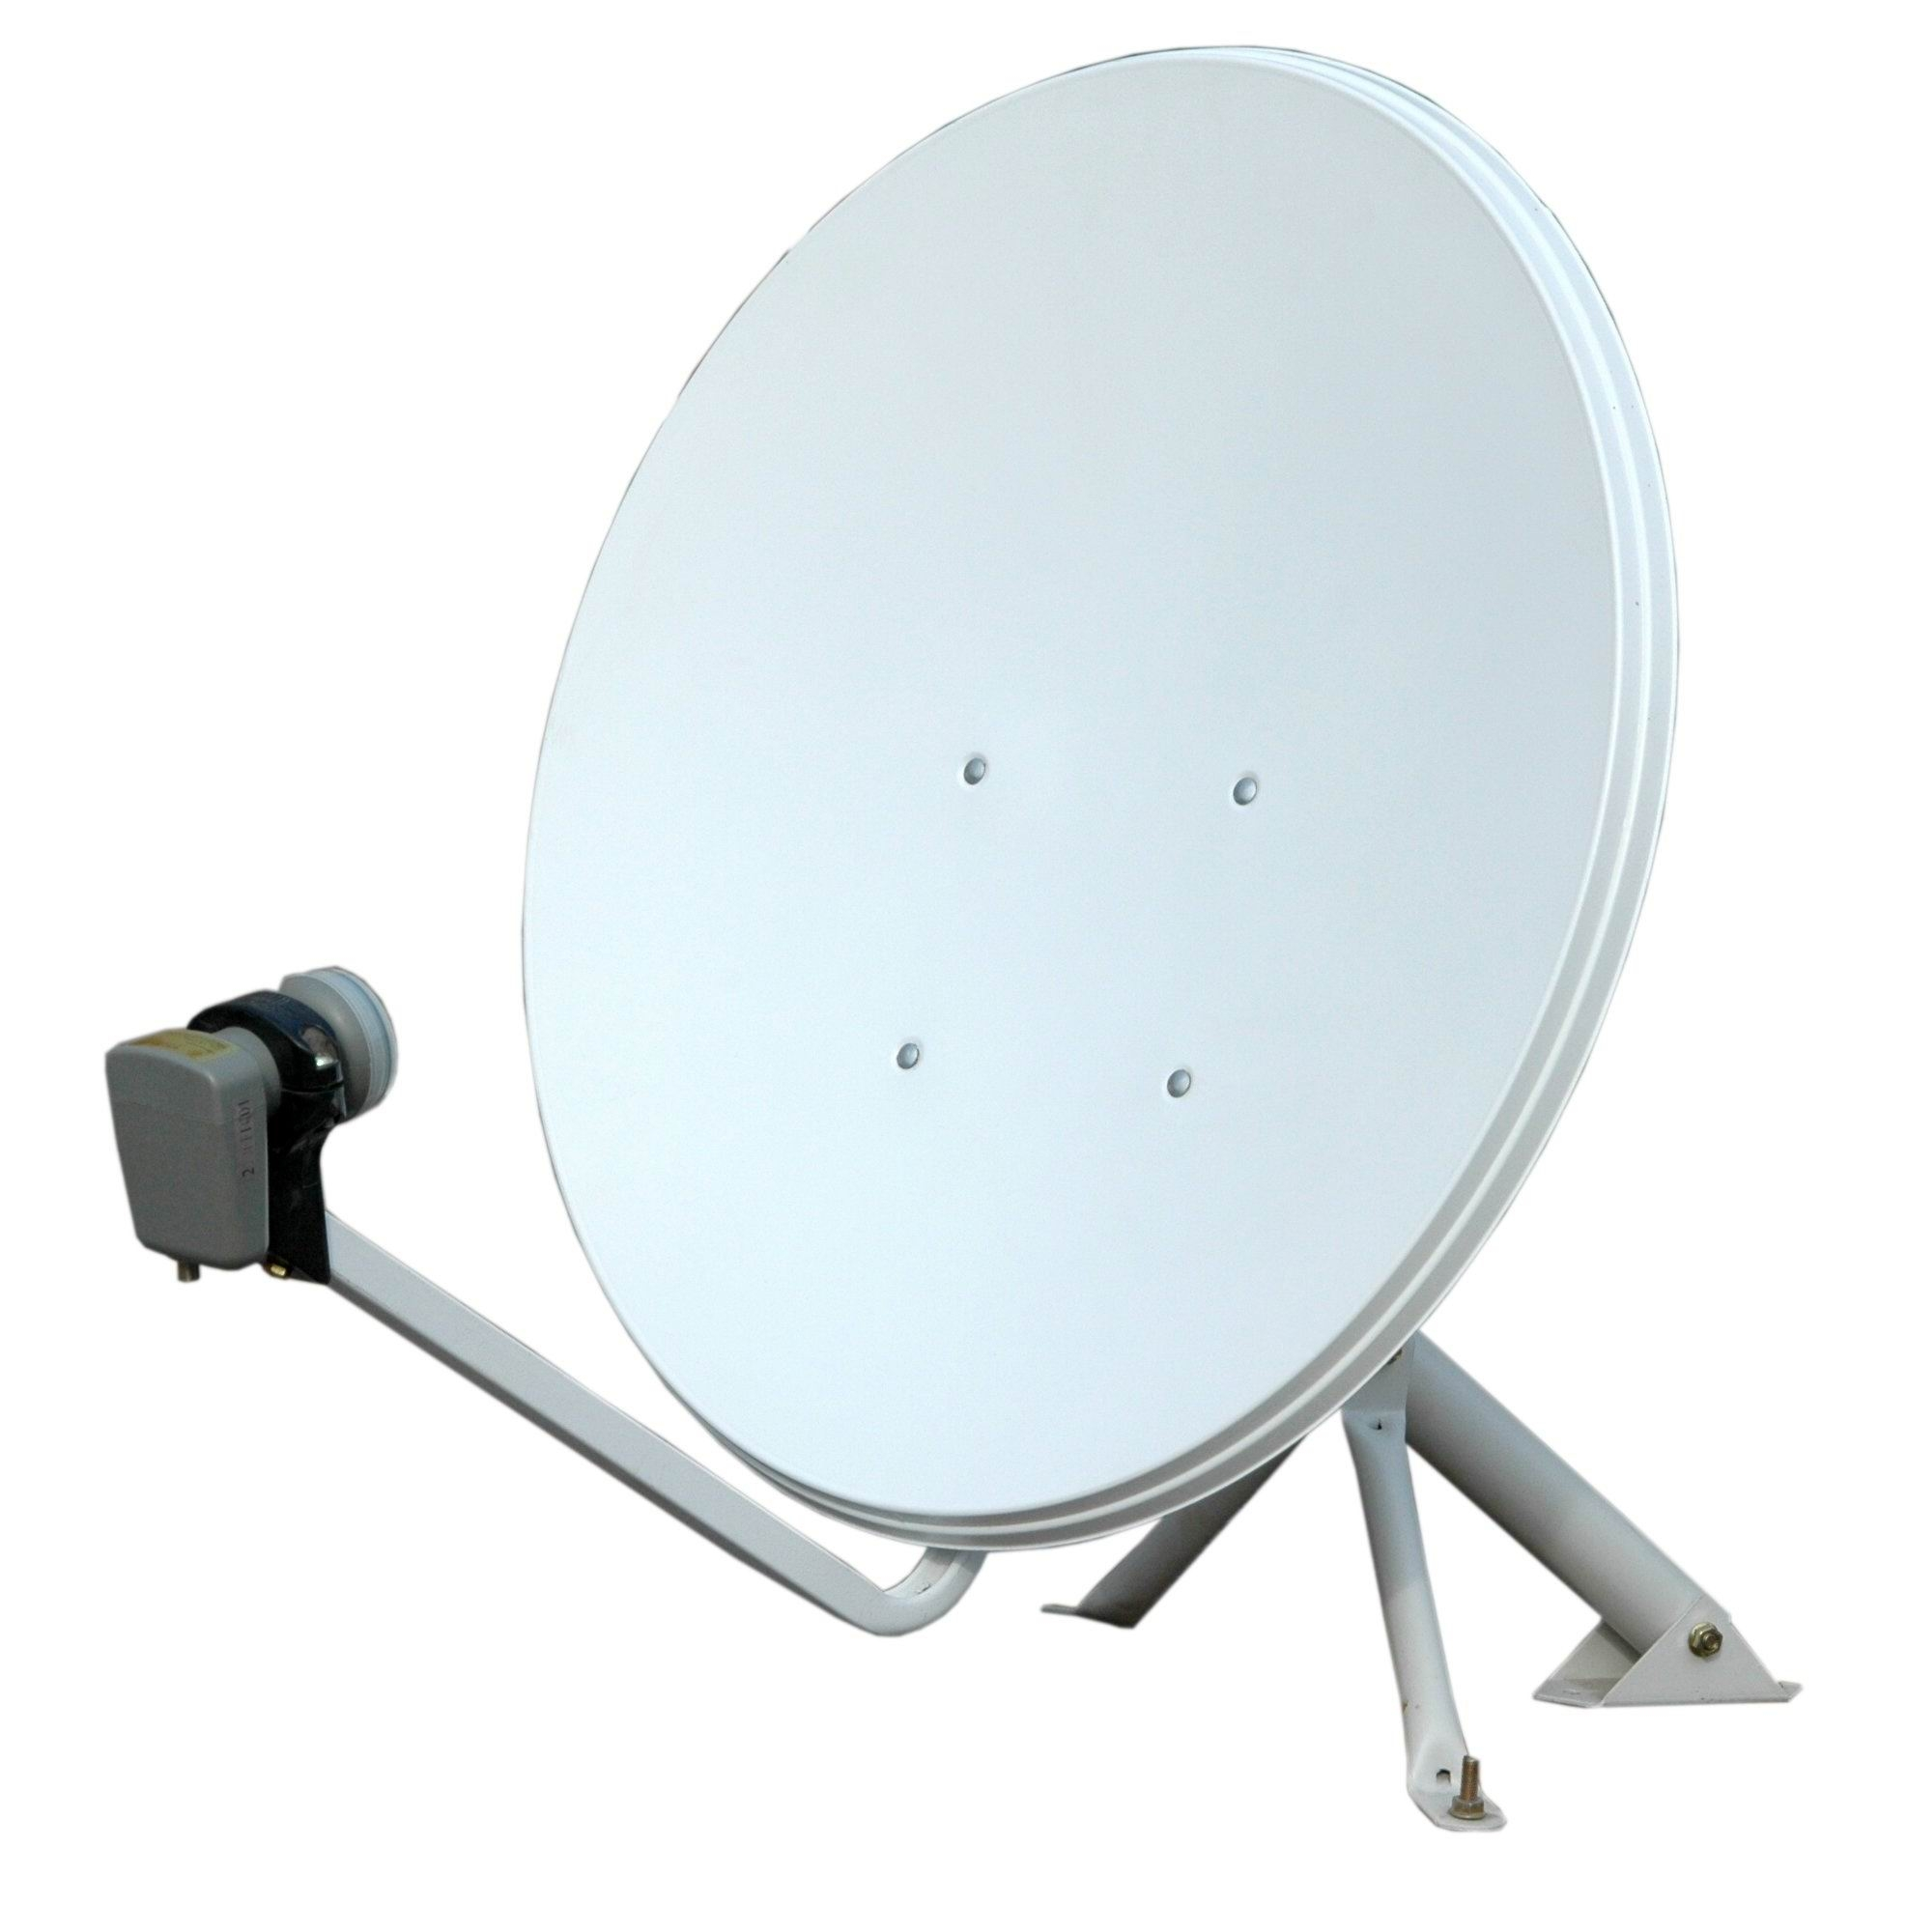 ku band 35cm satellite dish antenna buy satellite antenna antenna satellite dish antenna. Black Bedroom Furniture Sets. Home Design Ideas